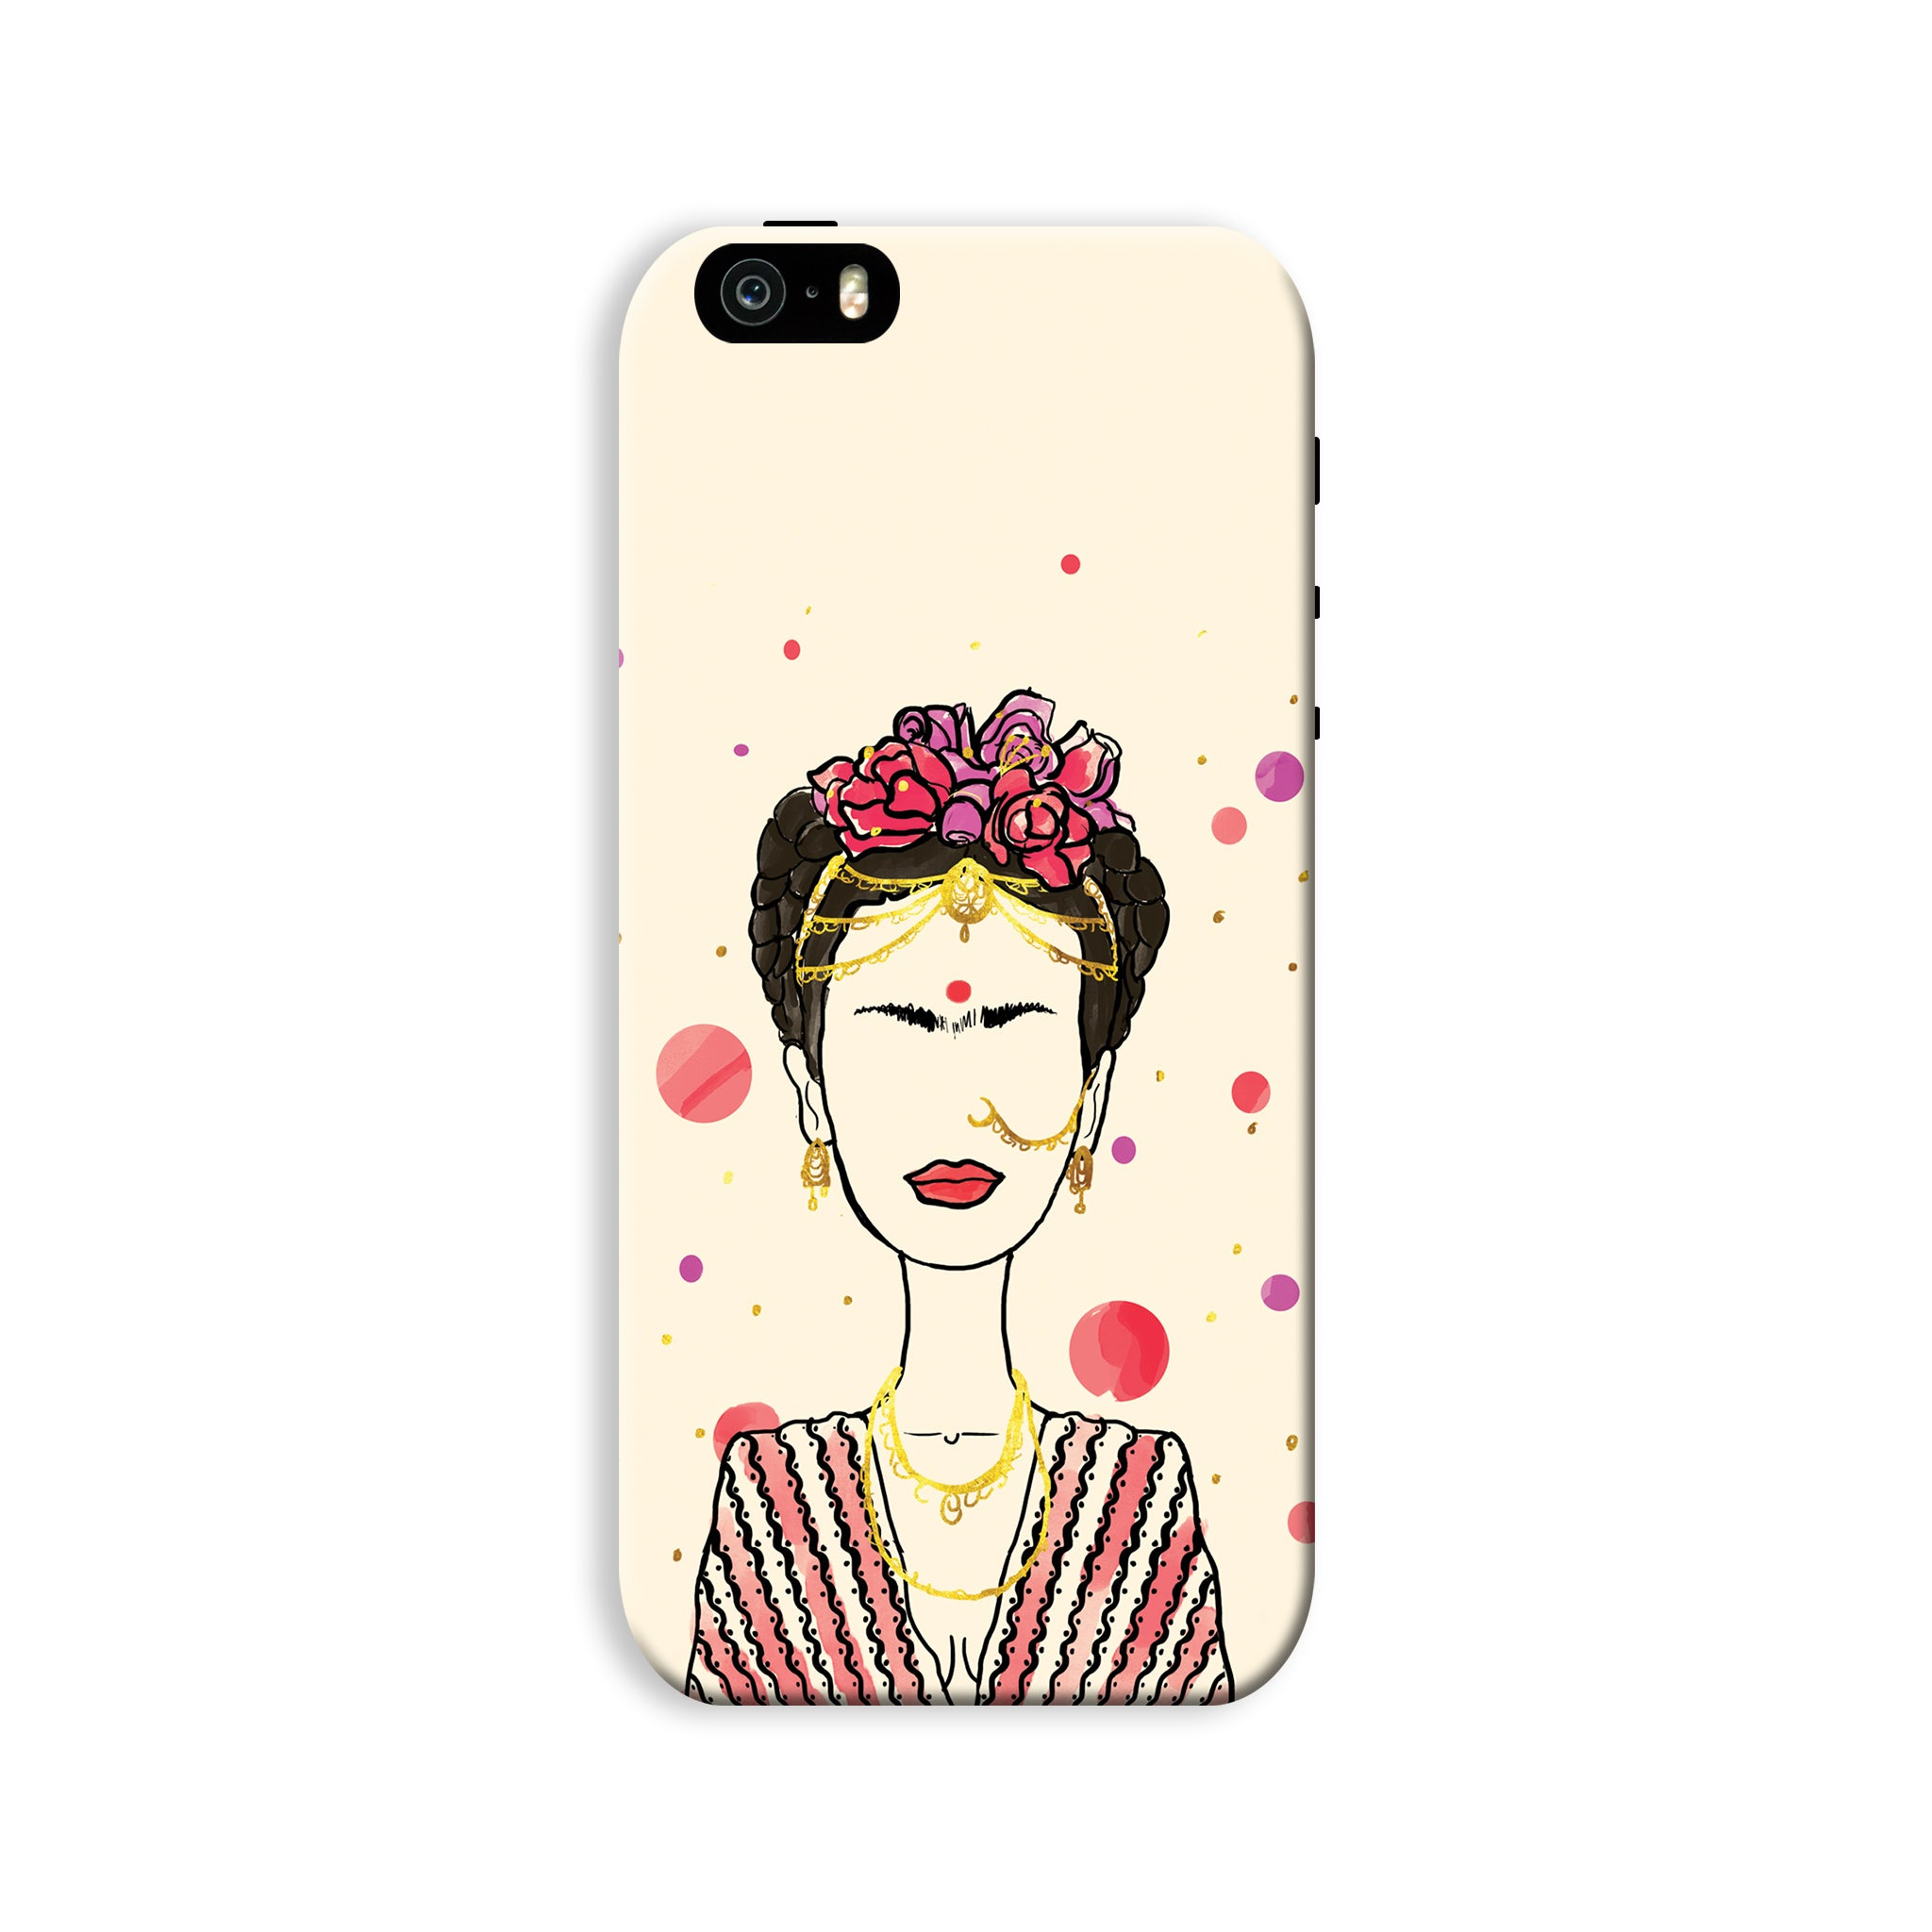 Frida Kahlo Iphone 5/5s Cover